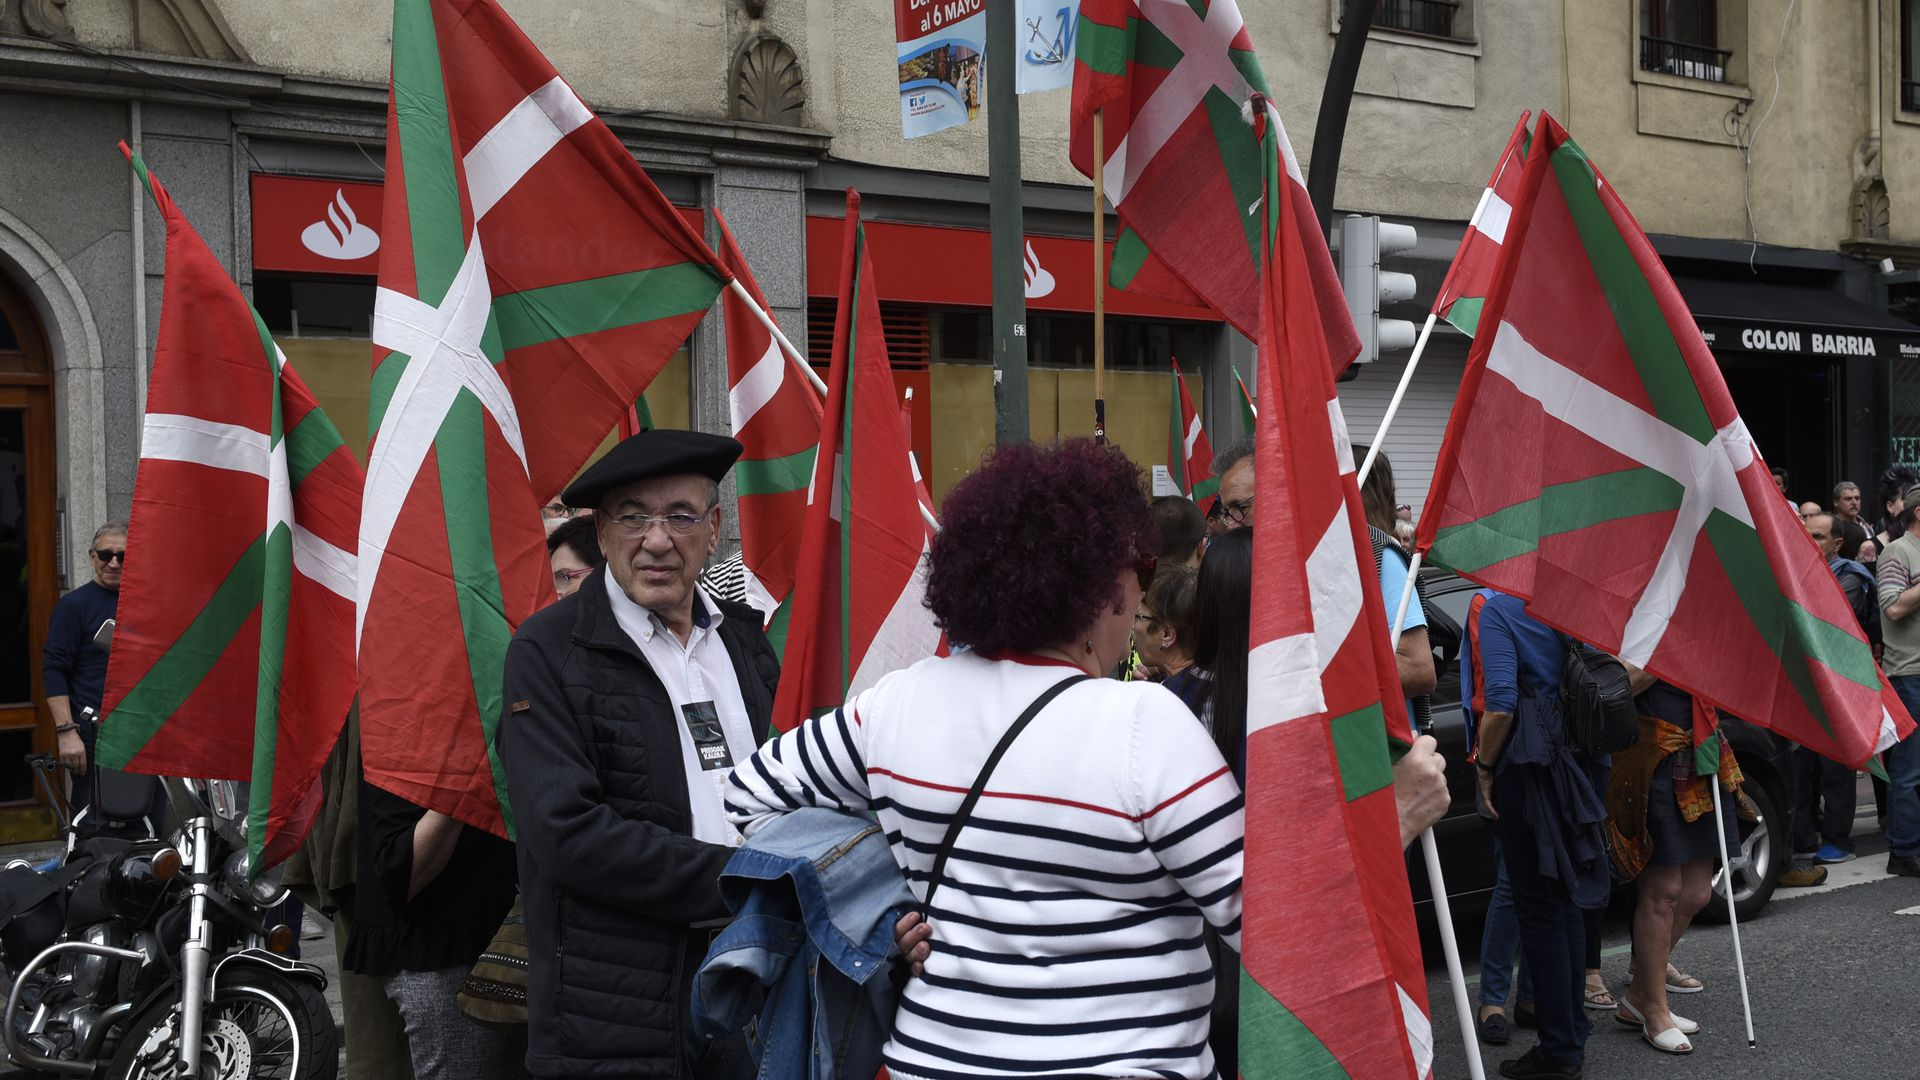 A group of basque separatism supporters rally in the city of Bilbao, northern Spain. Getty Images